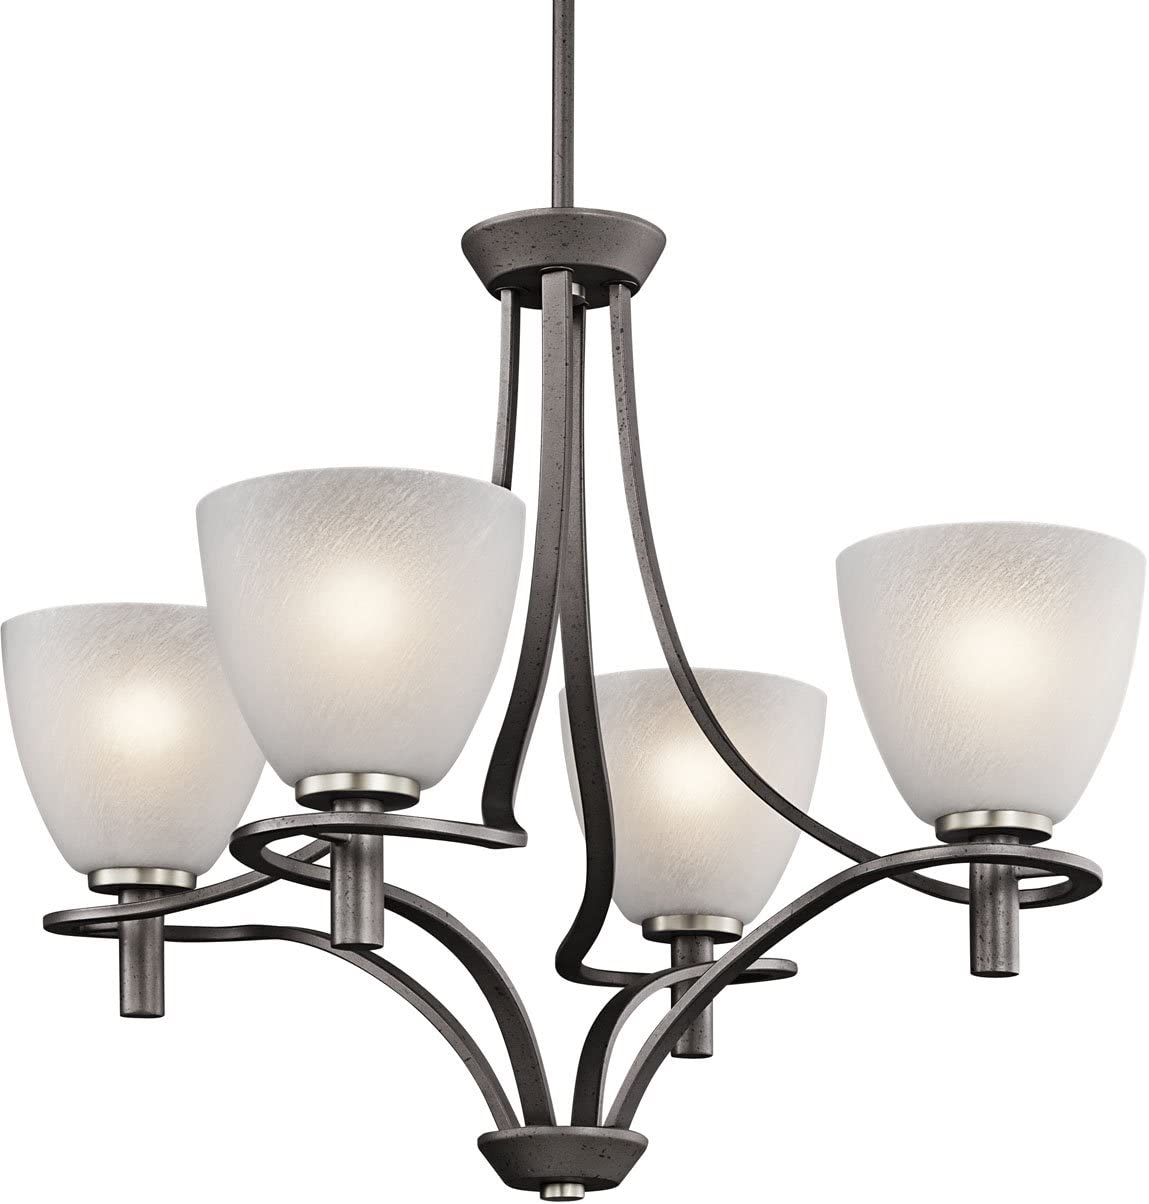 Kichler 43026AVI Neillo 4-Light Chandelier, Anvil Iron Finish with Textured Feather Glass